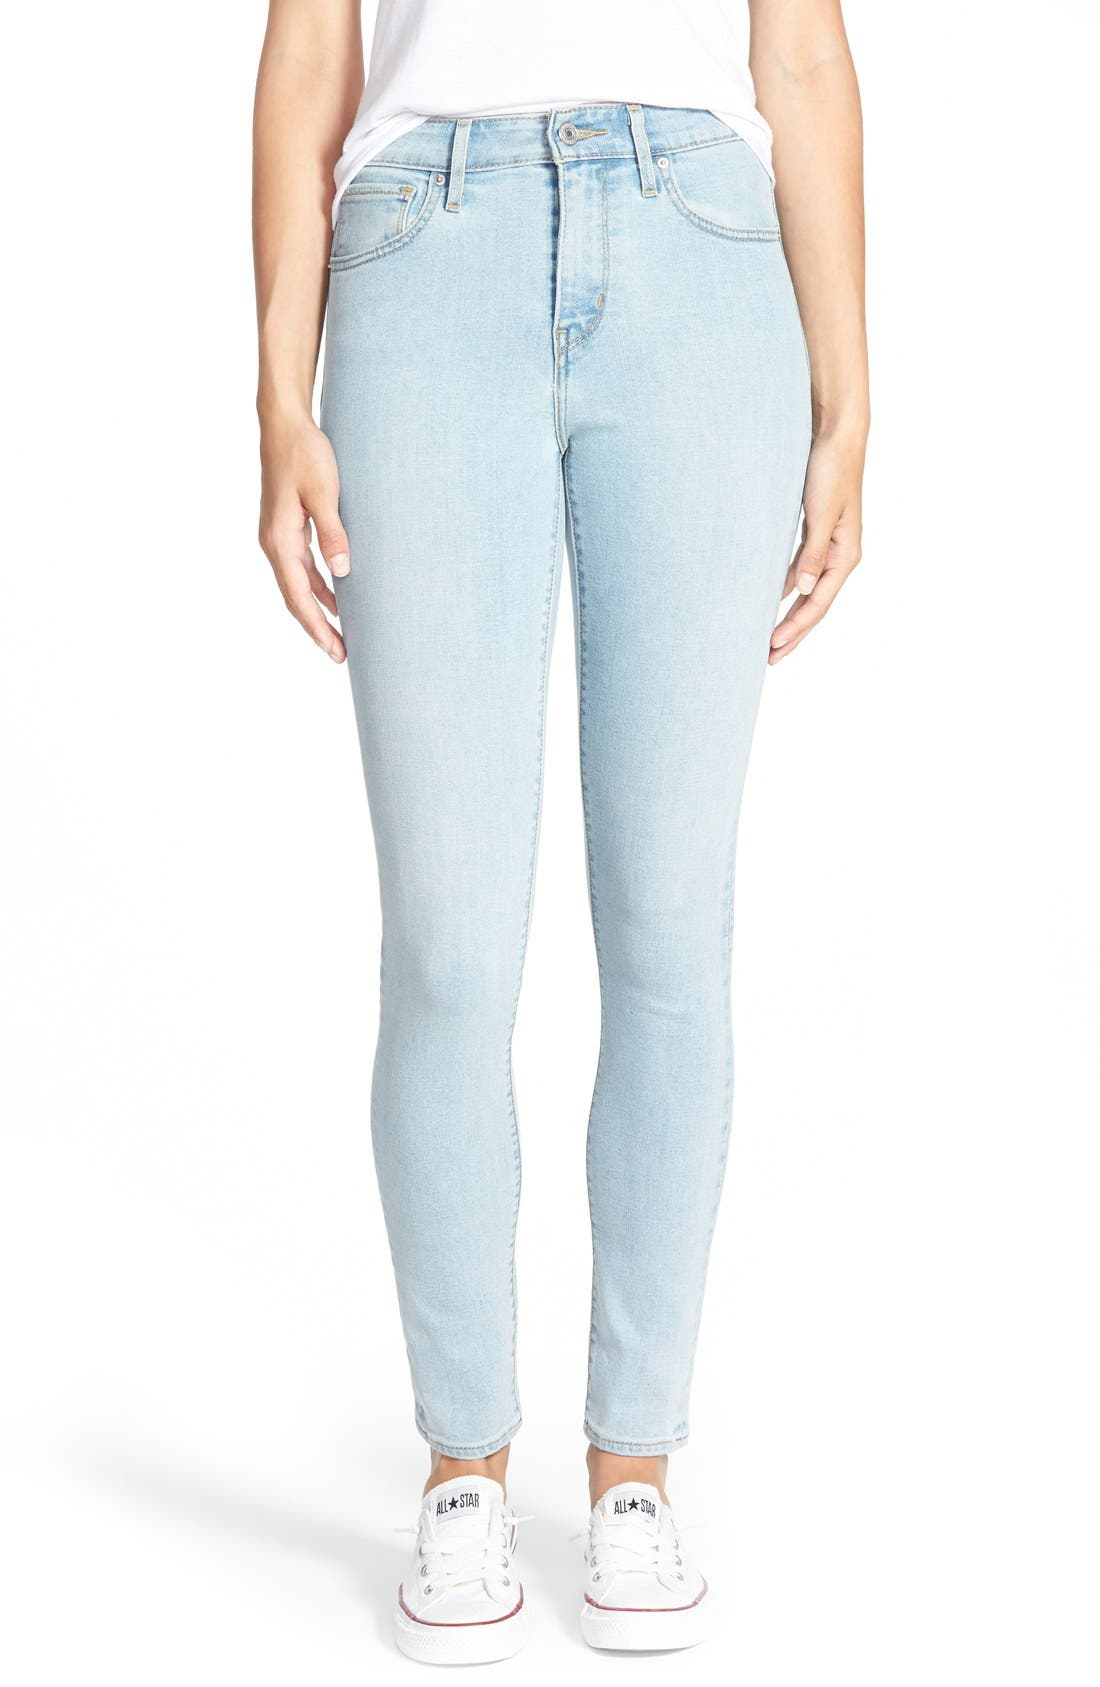 Alternate Image 1 Selected - Levi's® '721' High Rise Skinny Jeans (Light)